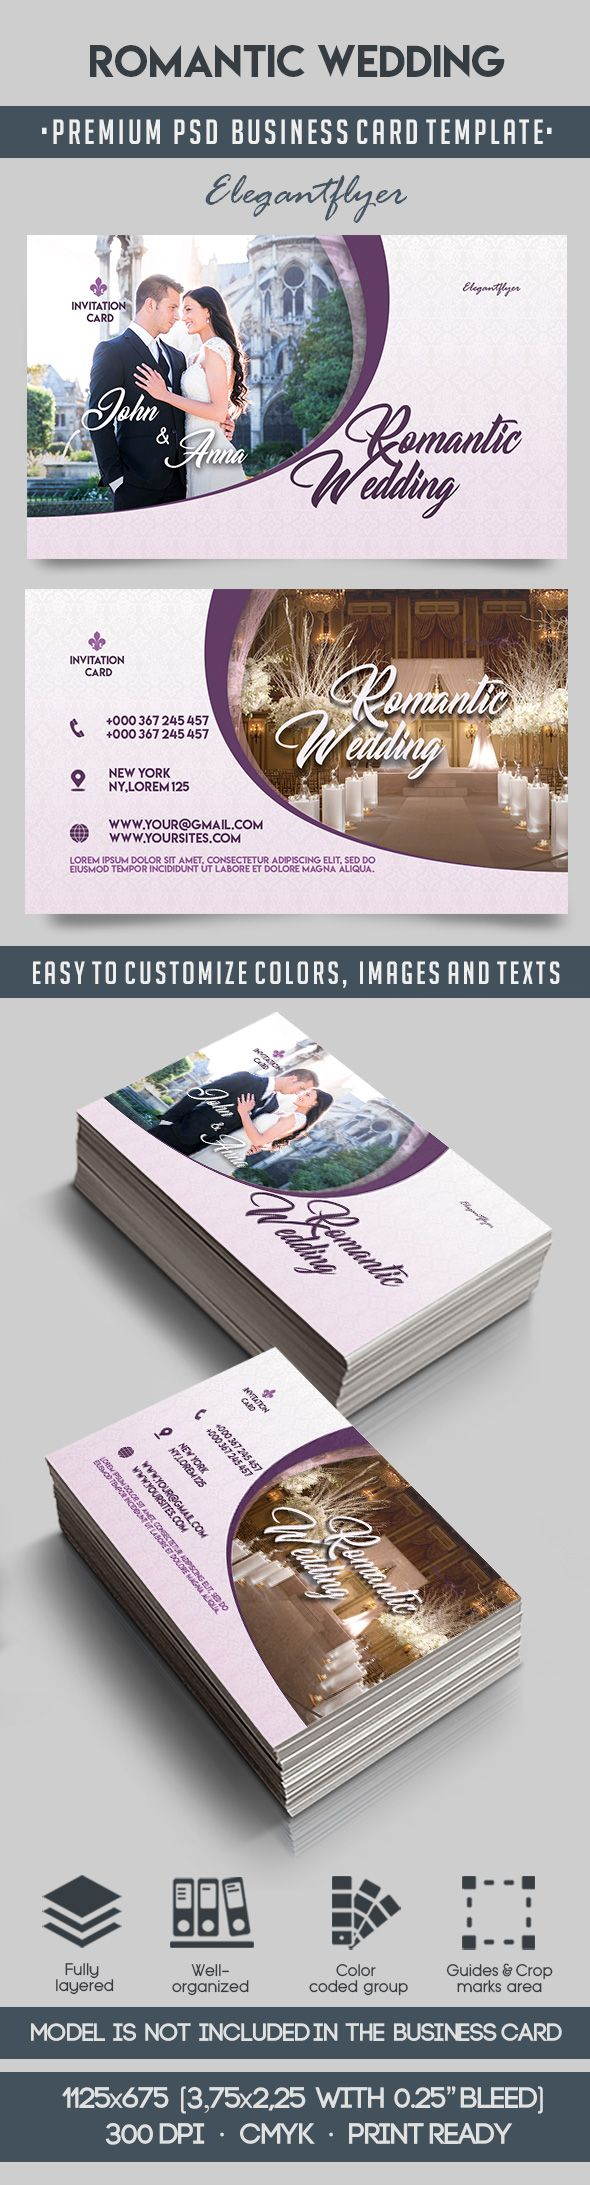 Romantic Wedding PSD Business Card